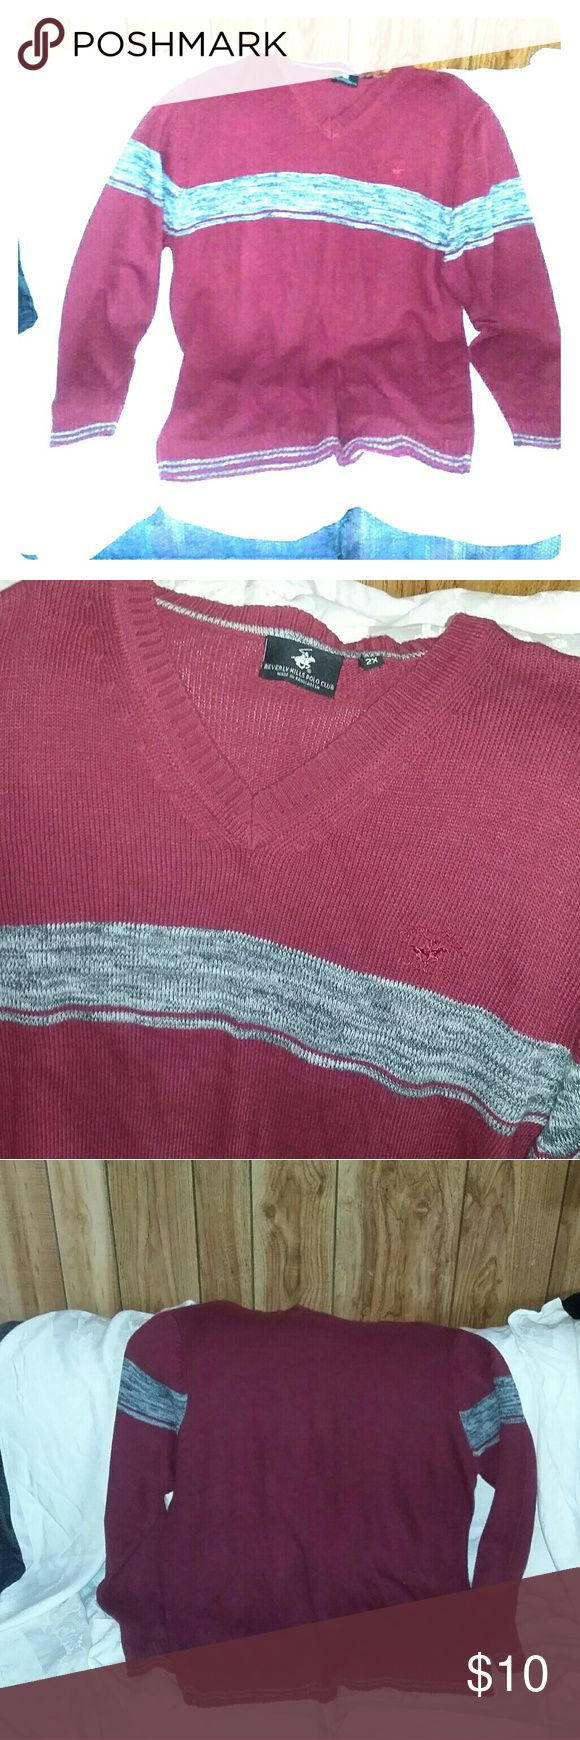 U.s. polo Association Club burgundy sweater 2 x The sweater is used it has a snag that I repaired on the back of one sleeve. Measurements for length width and sleeves are i the photos. I have lots of other unique items in my closet so go check it out please. Thanks for dropping by Brenda U.S. Polo Assn. Sweaters V-Neck